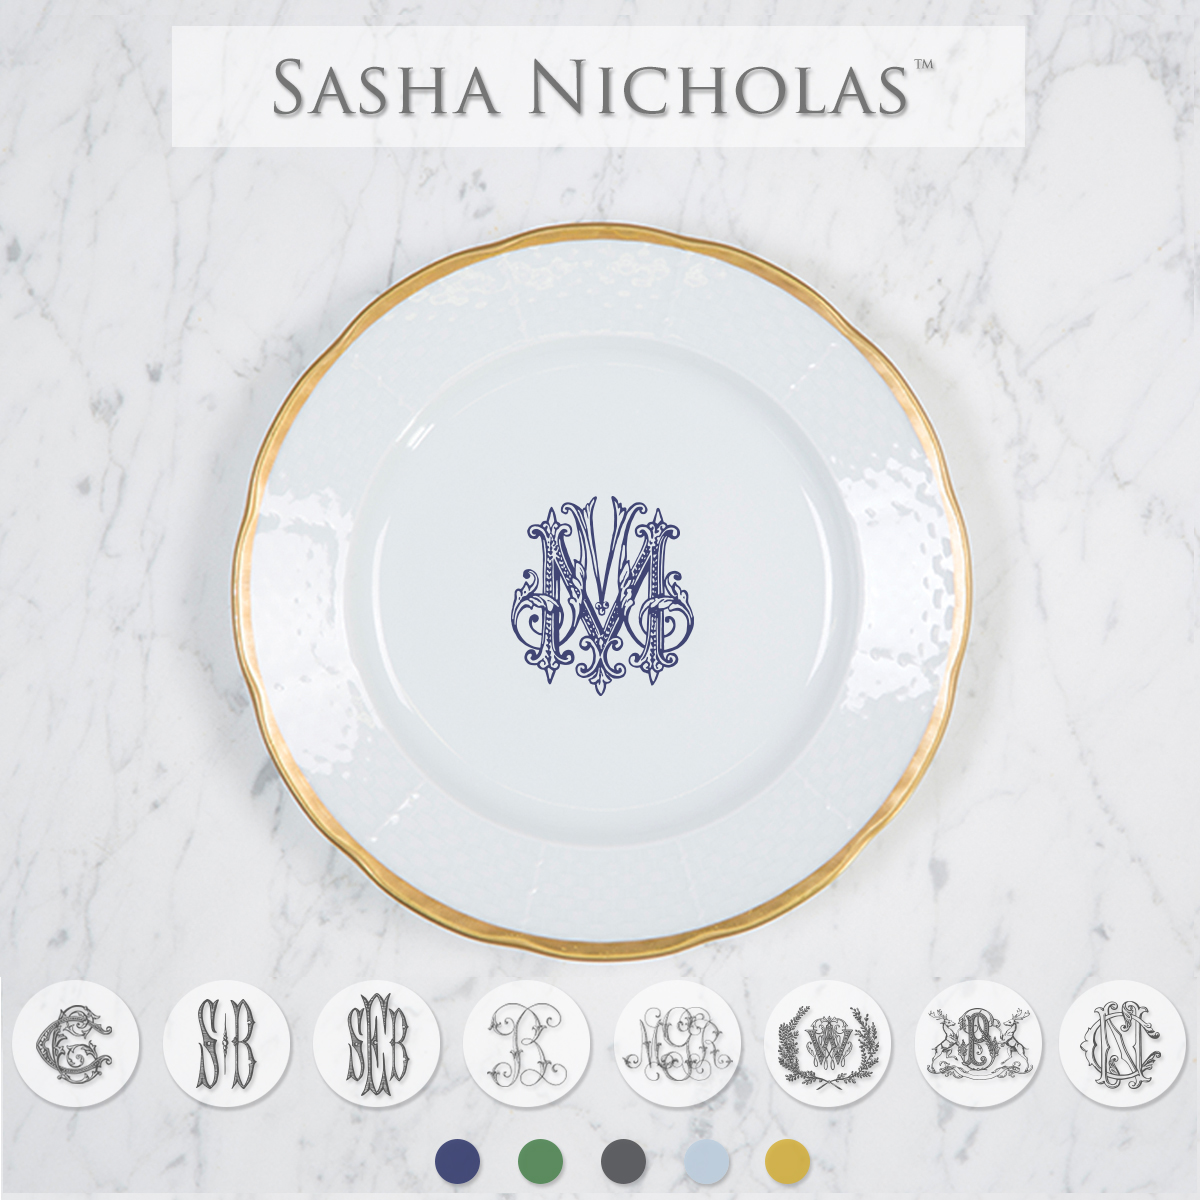 A beautiful addition to your dinnerware collection and to adorn your tablescapes with. It makes the perfect gift for your wedding registry and looks amazing layered with vintage dishes you inherit. Choose from their signature font styles or use a custom monogram or crest of your choice! The 24K gold rim is quite stunning. | Sasha Nicholas's white porcelain 24K gold weave salad plate